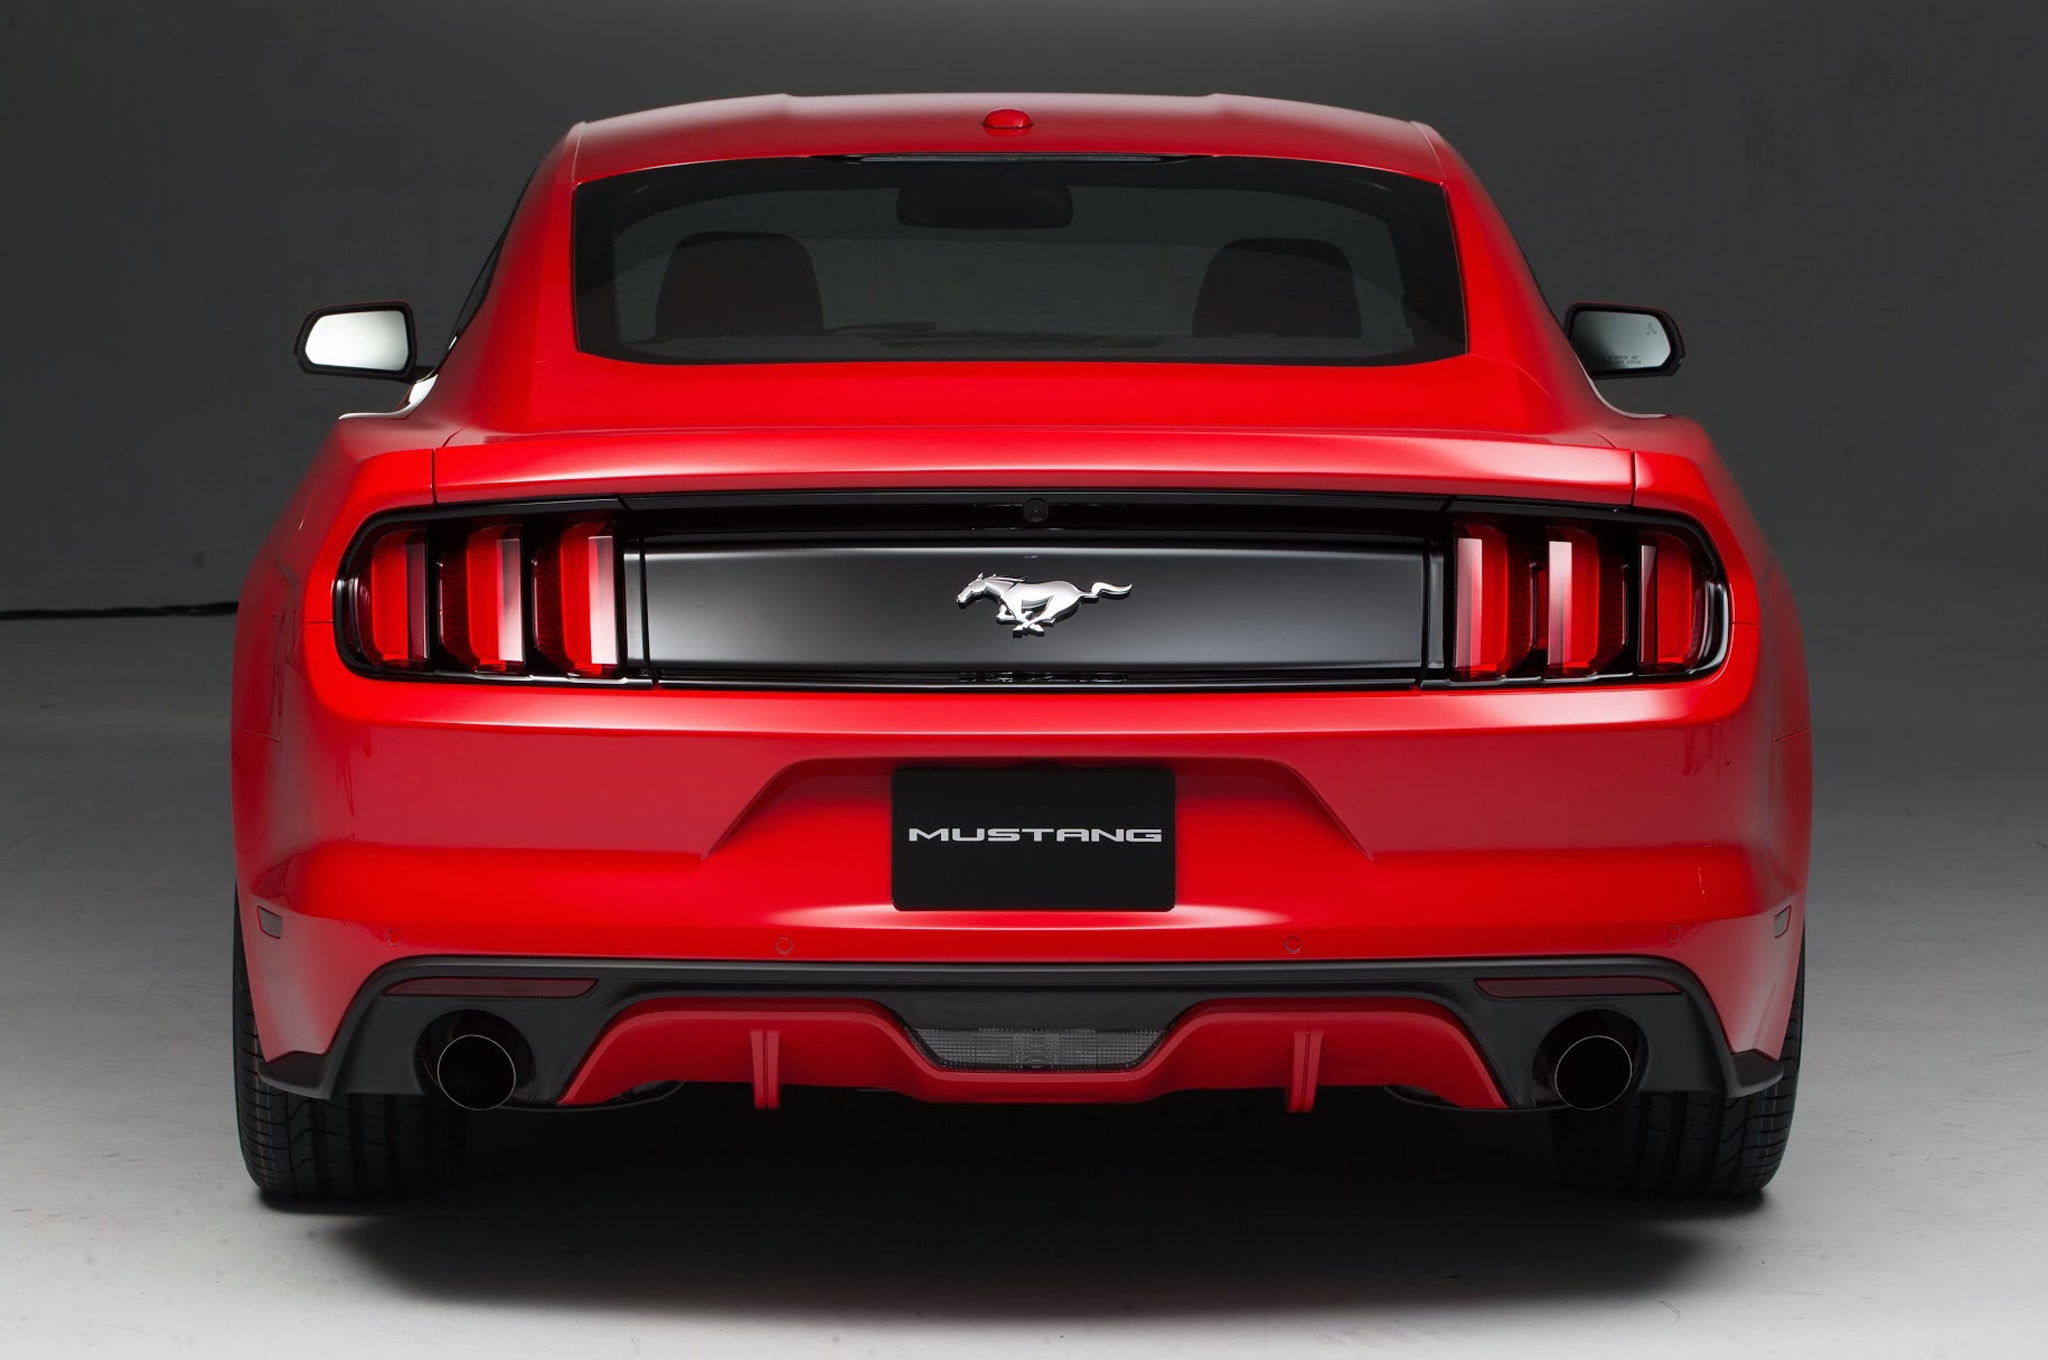 ford mustang top view. 2015 ford mustang rear view top i